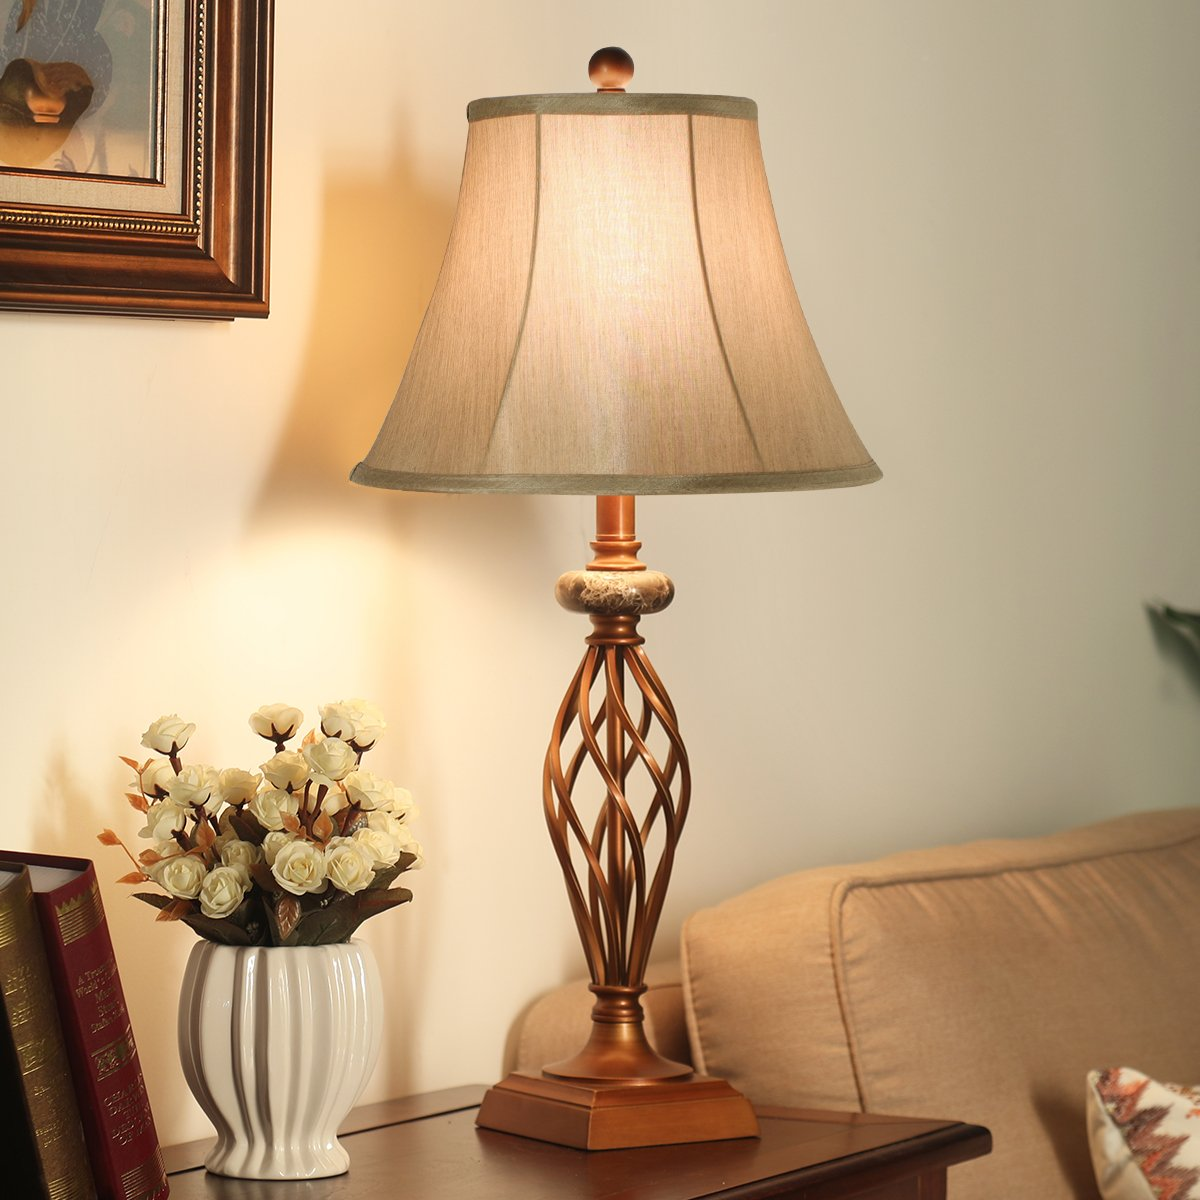 Living Room Lamp Sets: Table Lamps Set Of 2 For Bedroom Or Living Room, 27.5 In